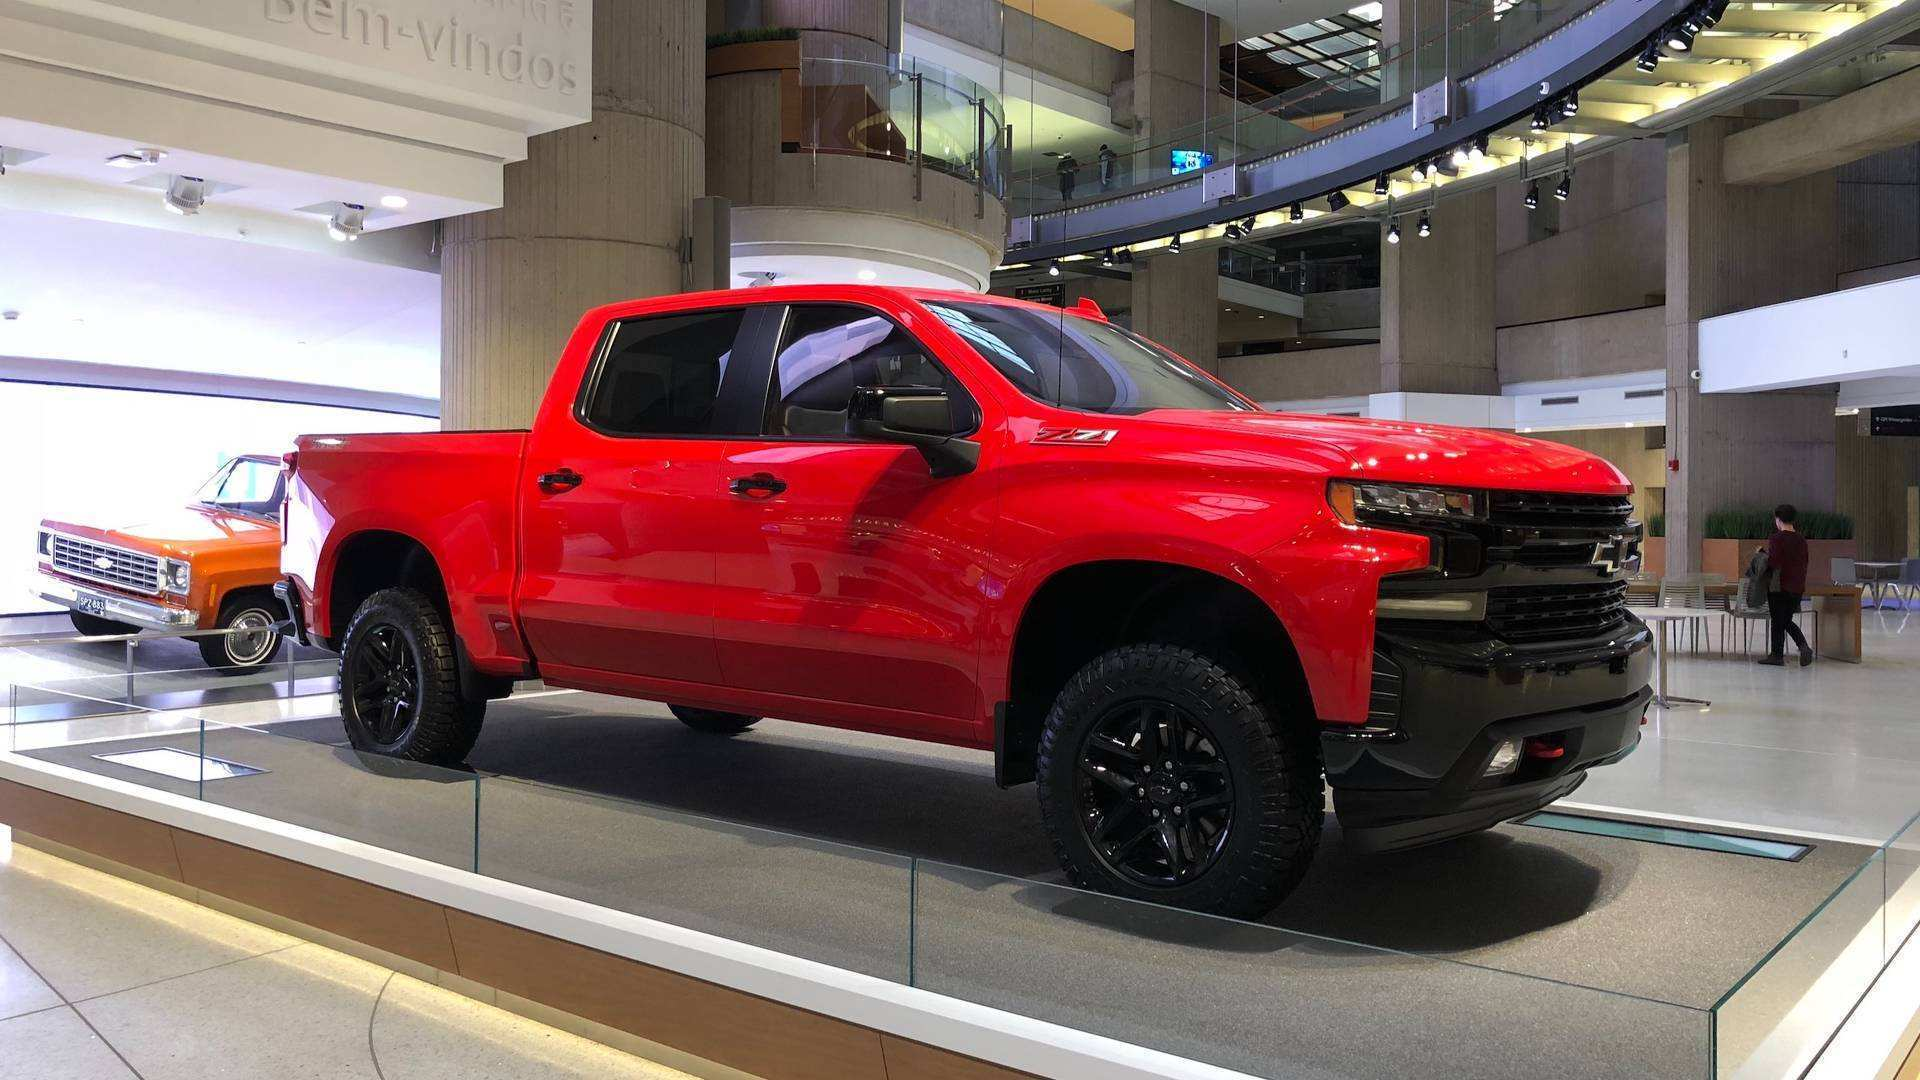 39 All New 2019 Chevy Reaper Exterior And Interior